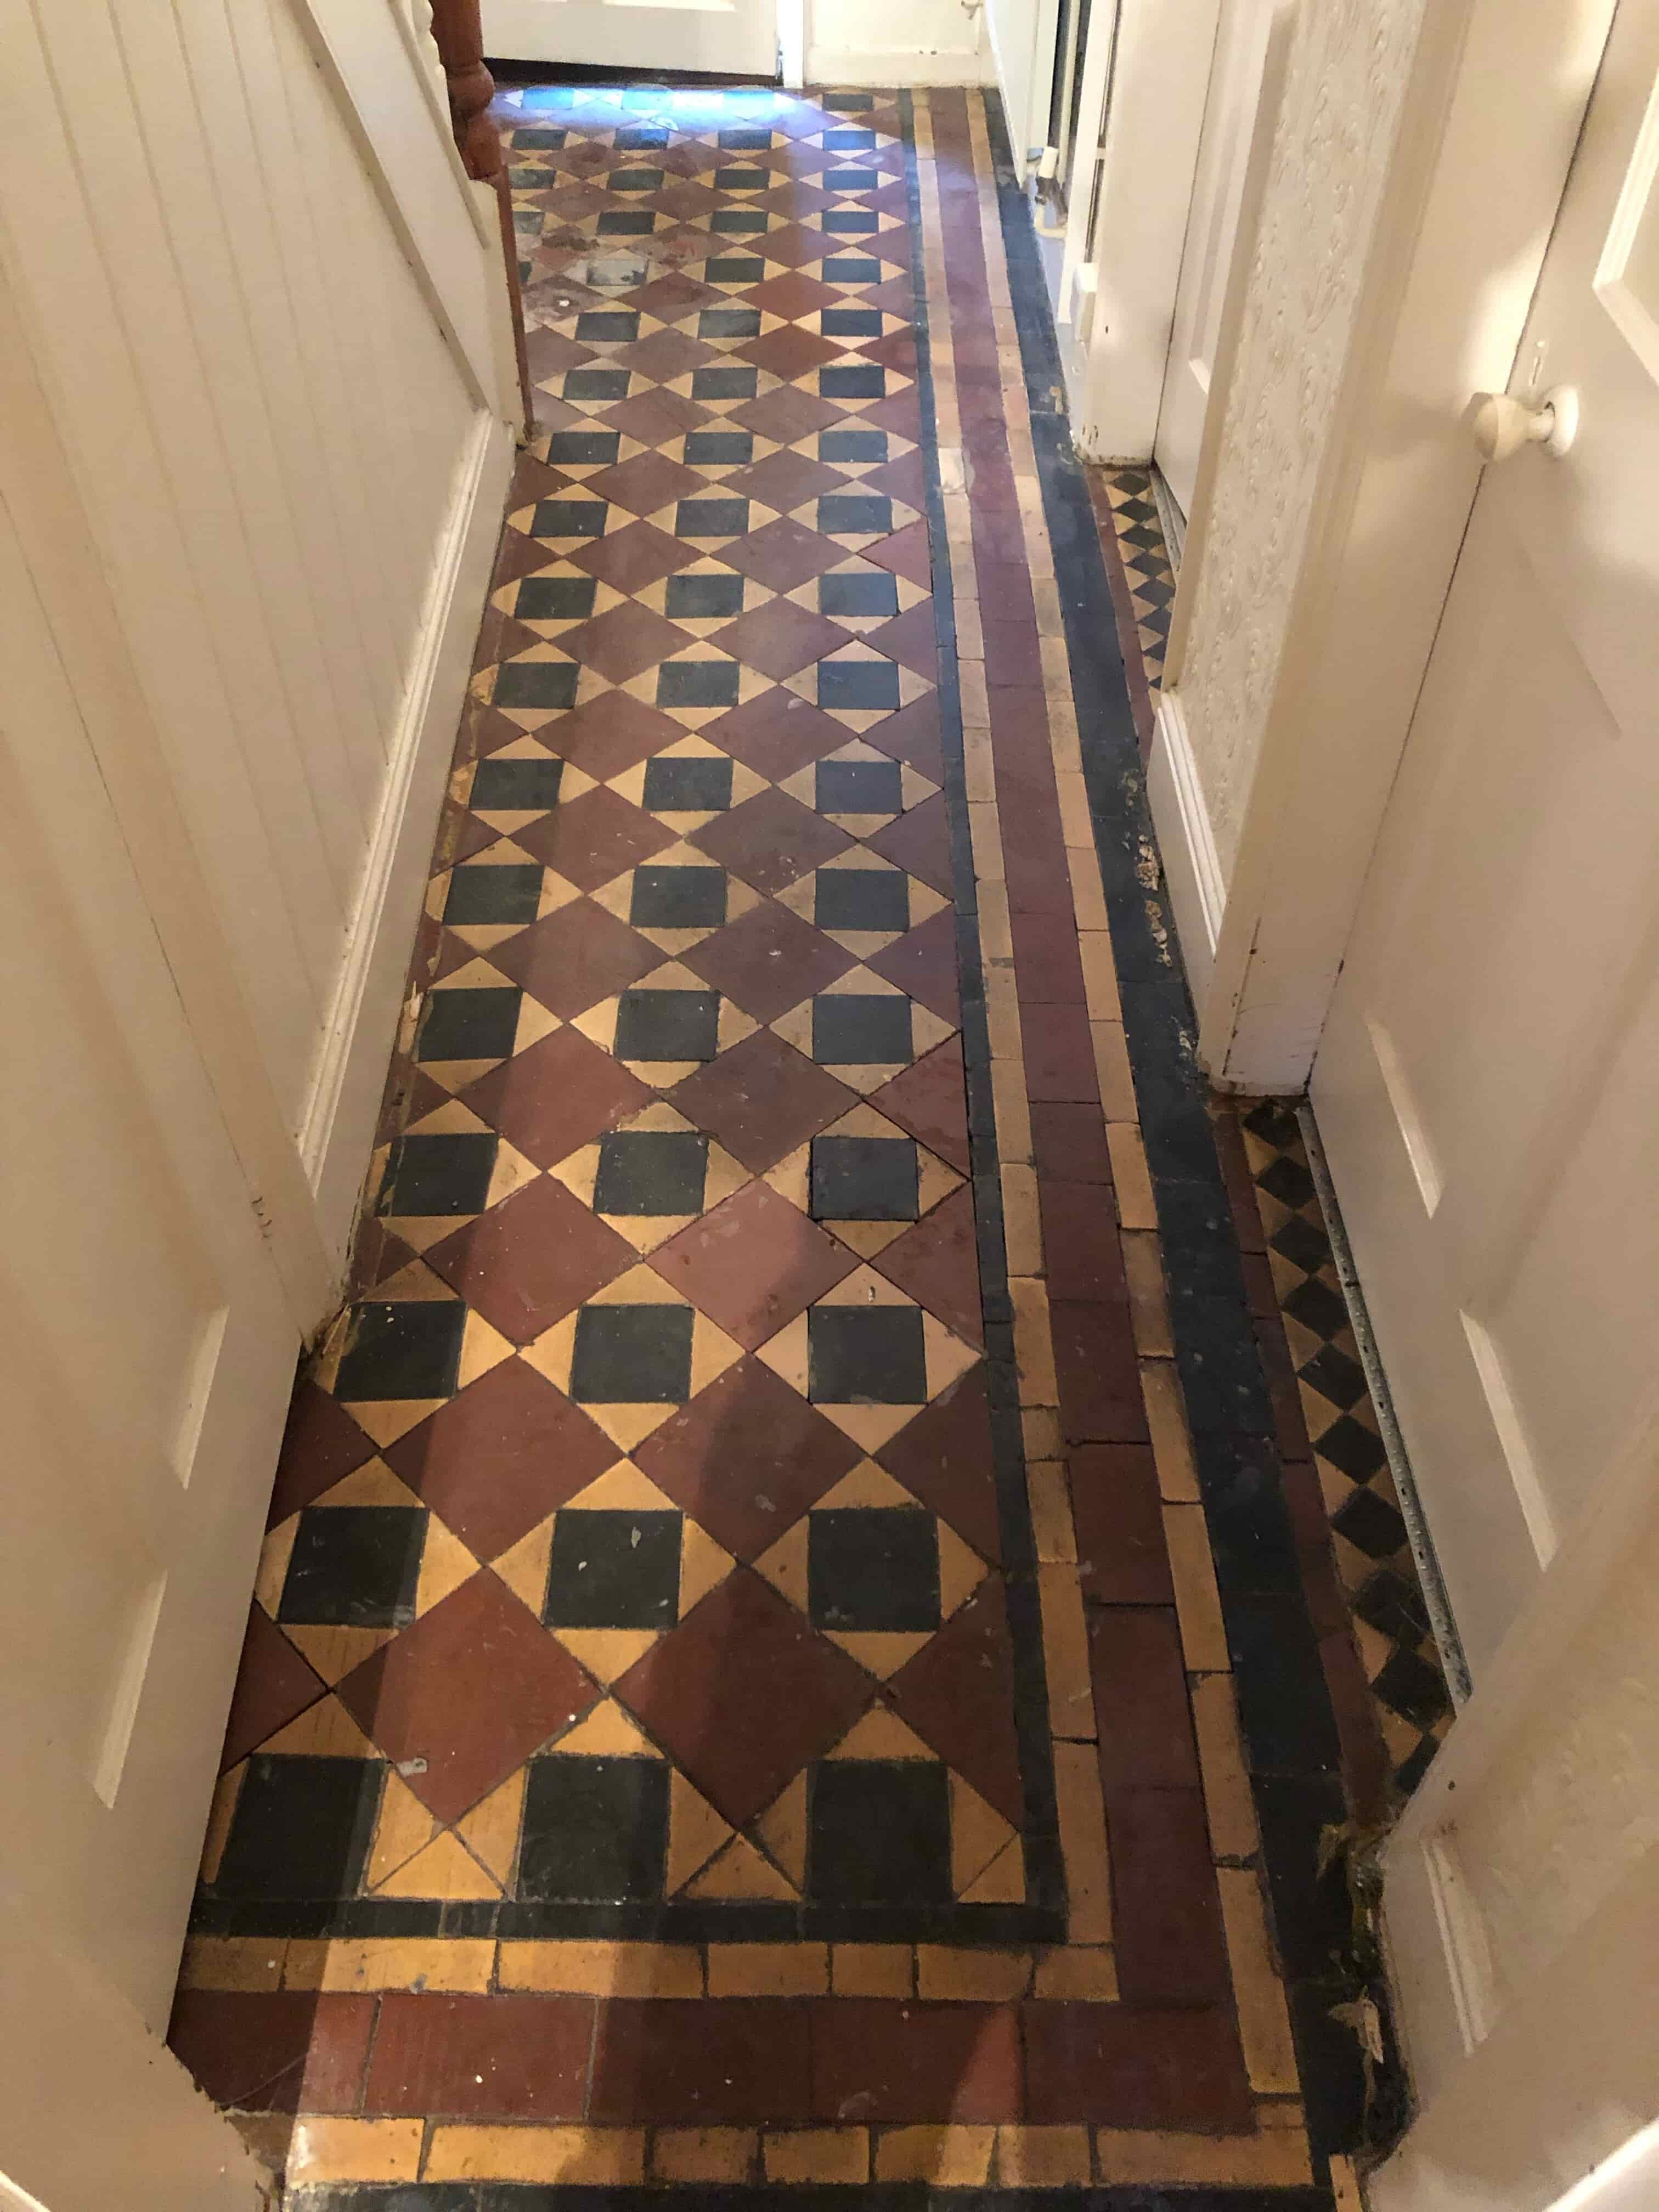 Edwardian Hallway Tiled Floor Before Clean and Seal